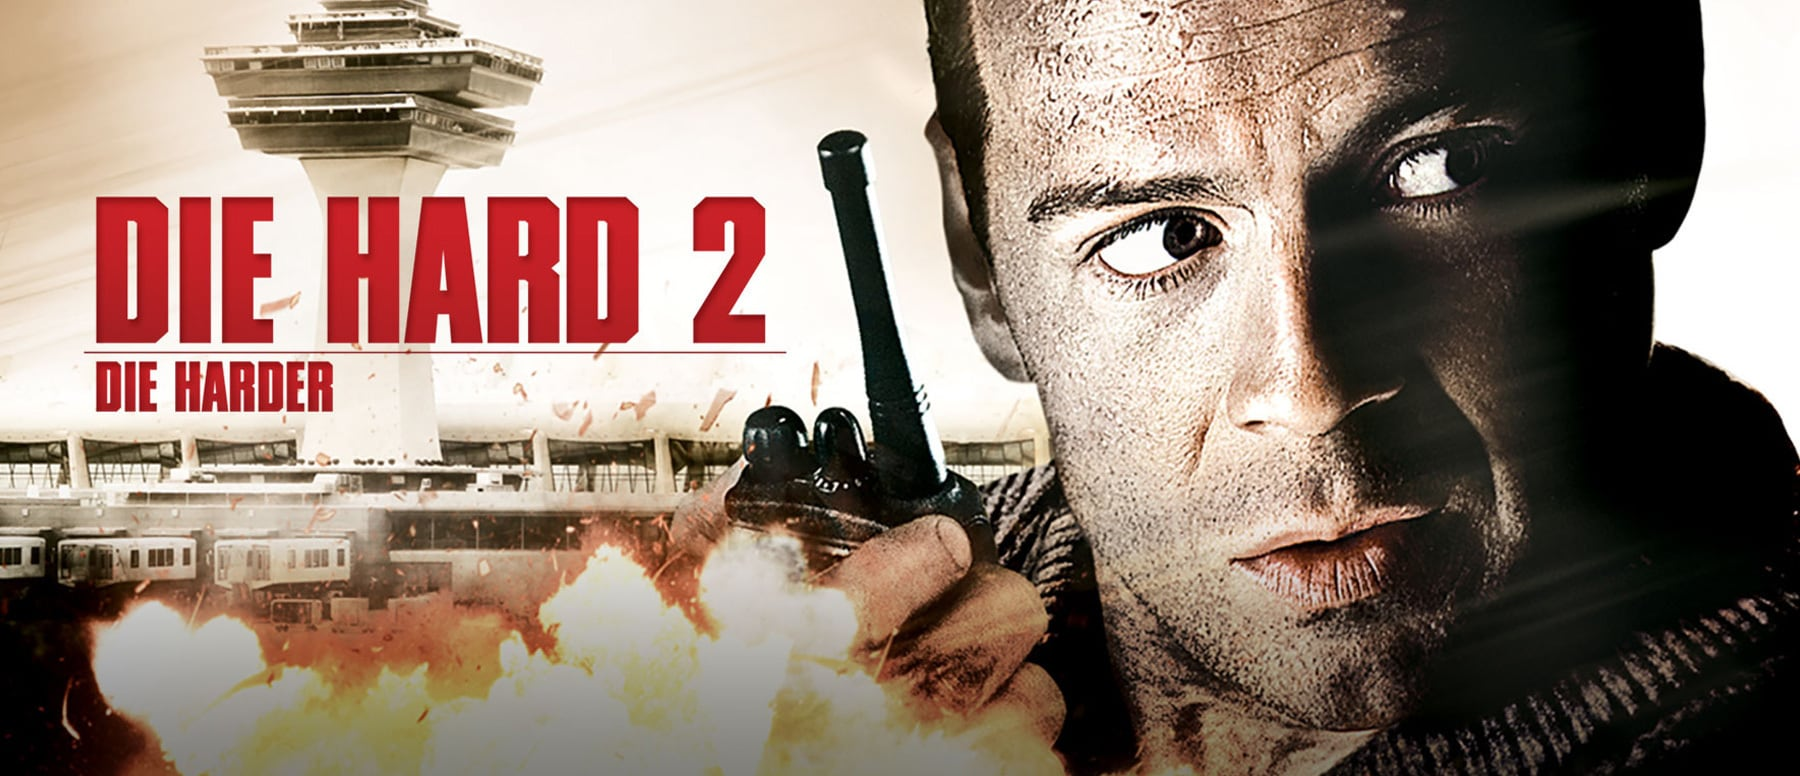 Die Hard 2 Hero